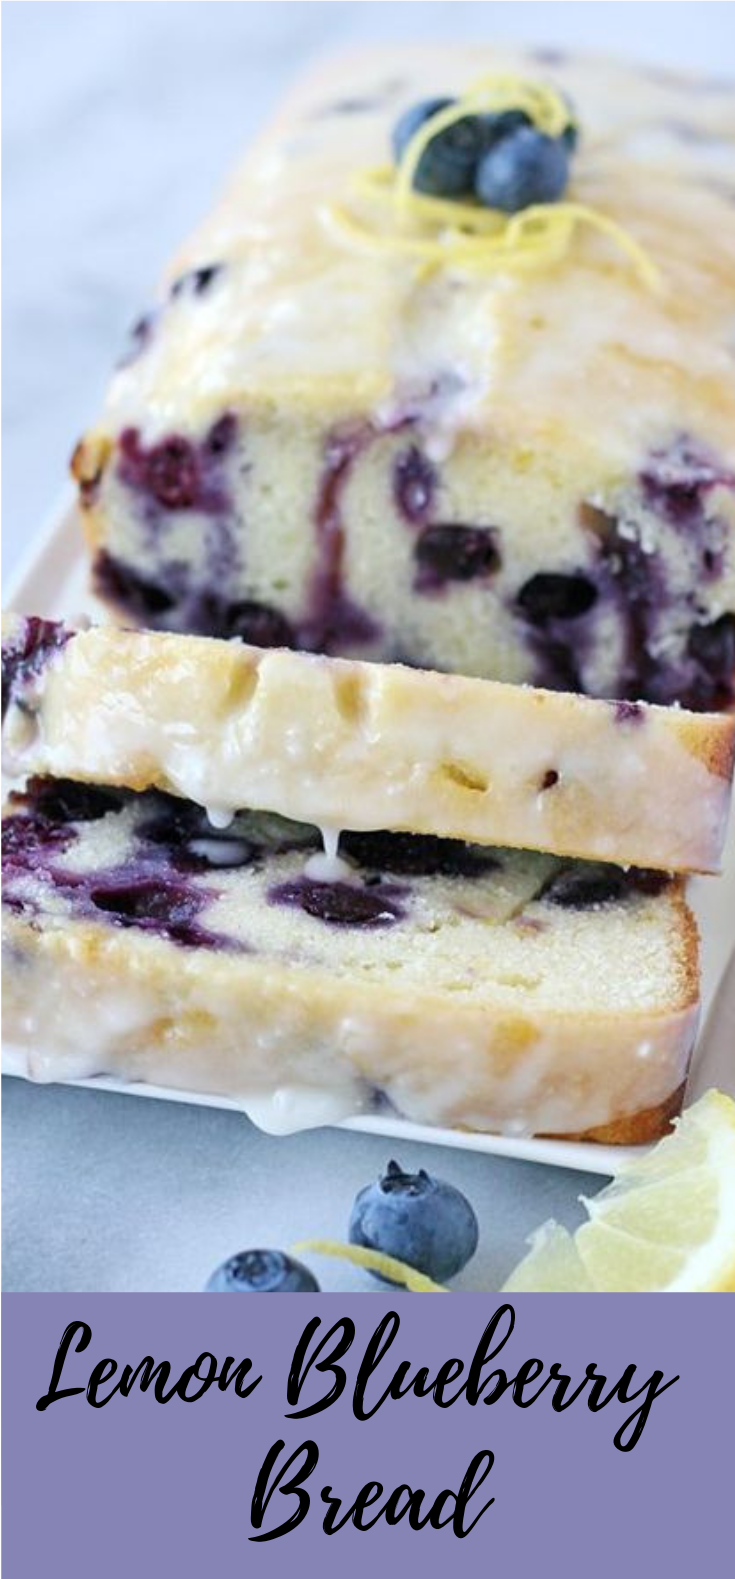 Lemon Blueberry Bread #dessert #cake